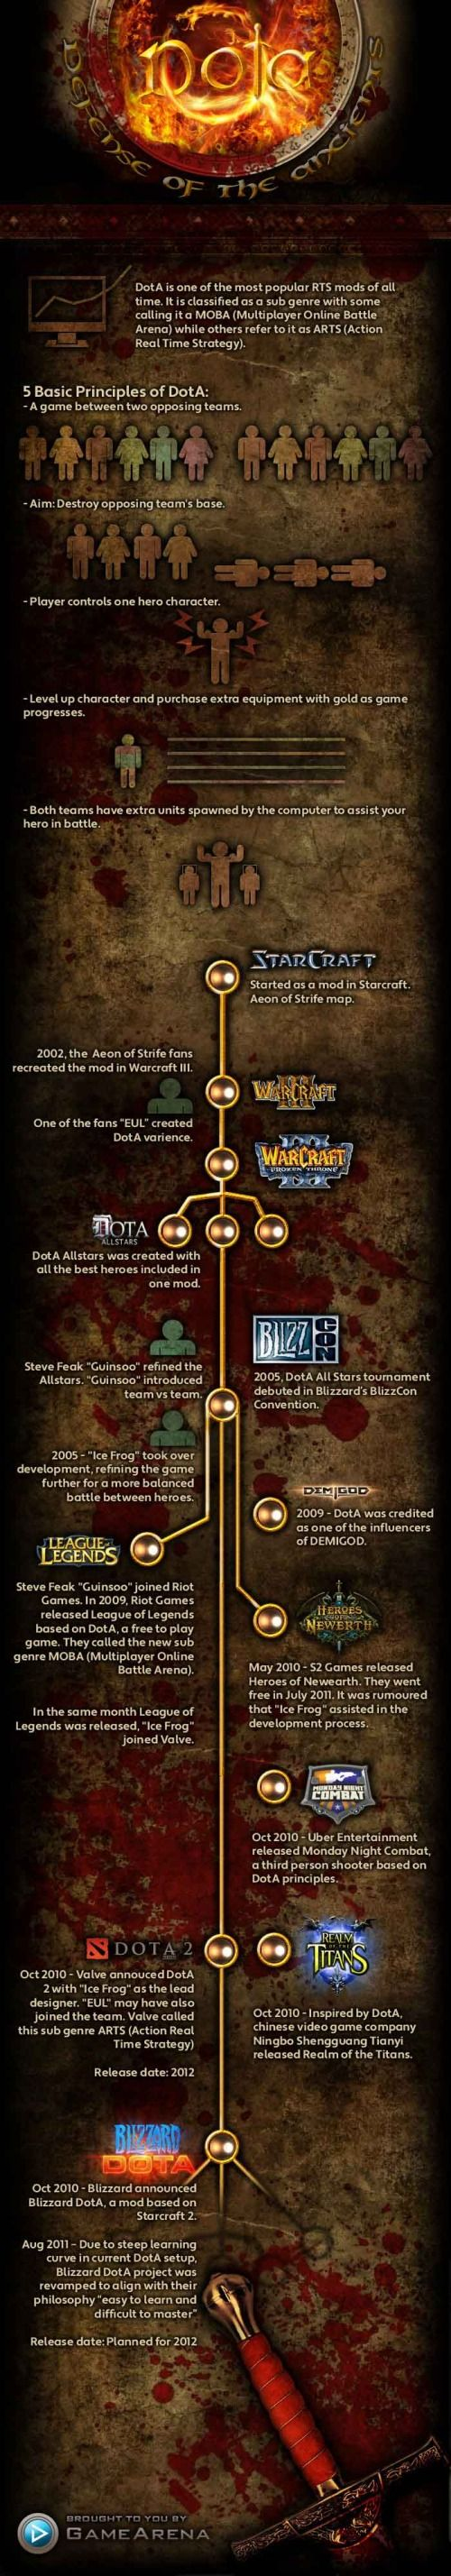 Defense of the Ancients (DotA) Infographic: History, Games Infographic, Nerdy Stuff, Videos Games, Dota Games, Ancient Dota, Online Games, The Games, Dota Time